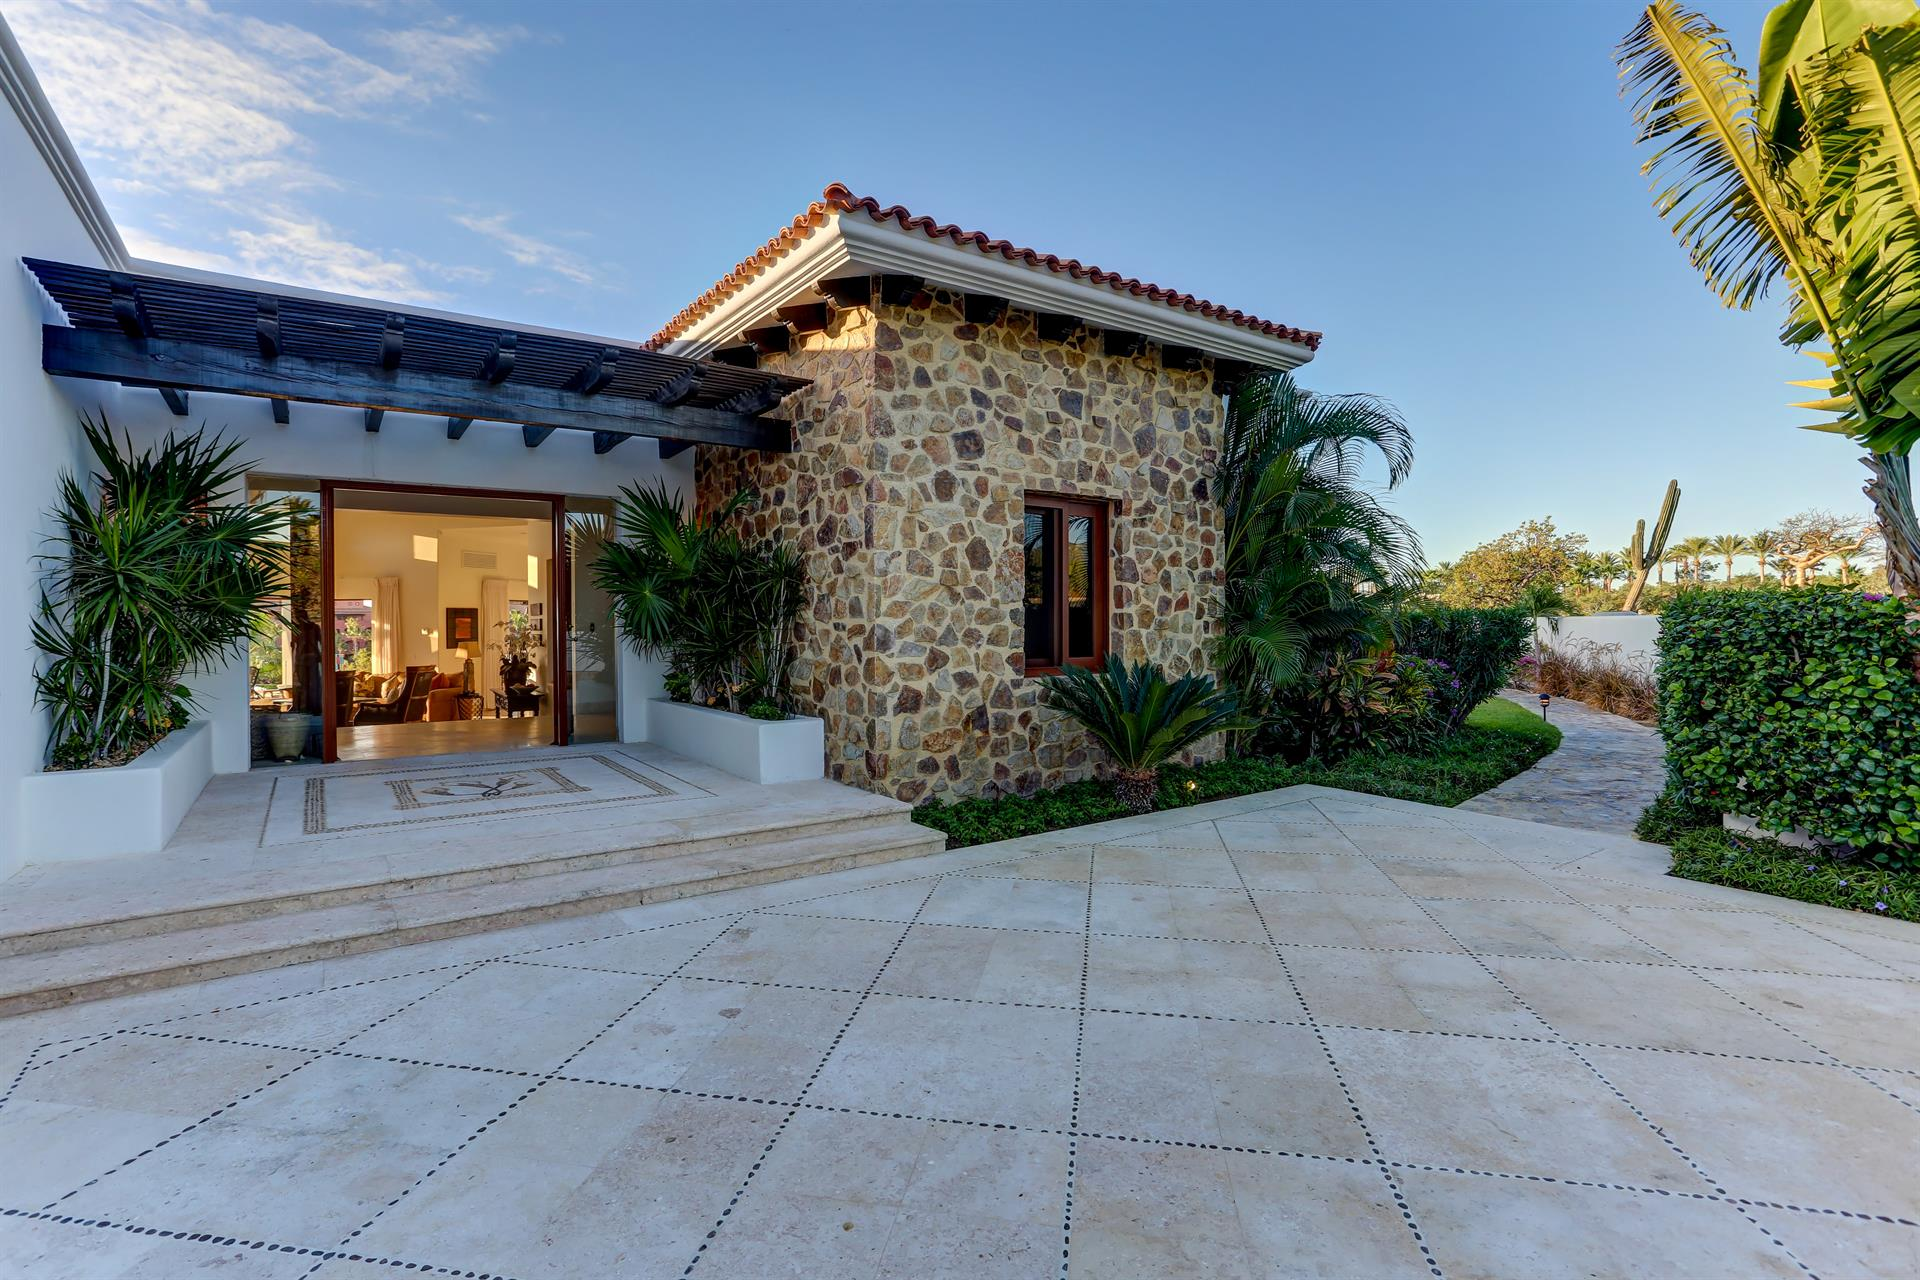 Additional photo for property listing at Casa de la Playa  San Jose Del Cabo, Baja California Sur,23406 Mexico